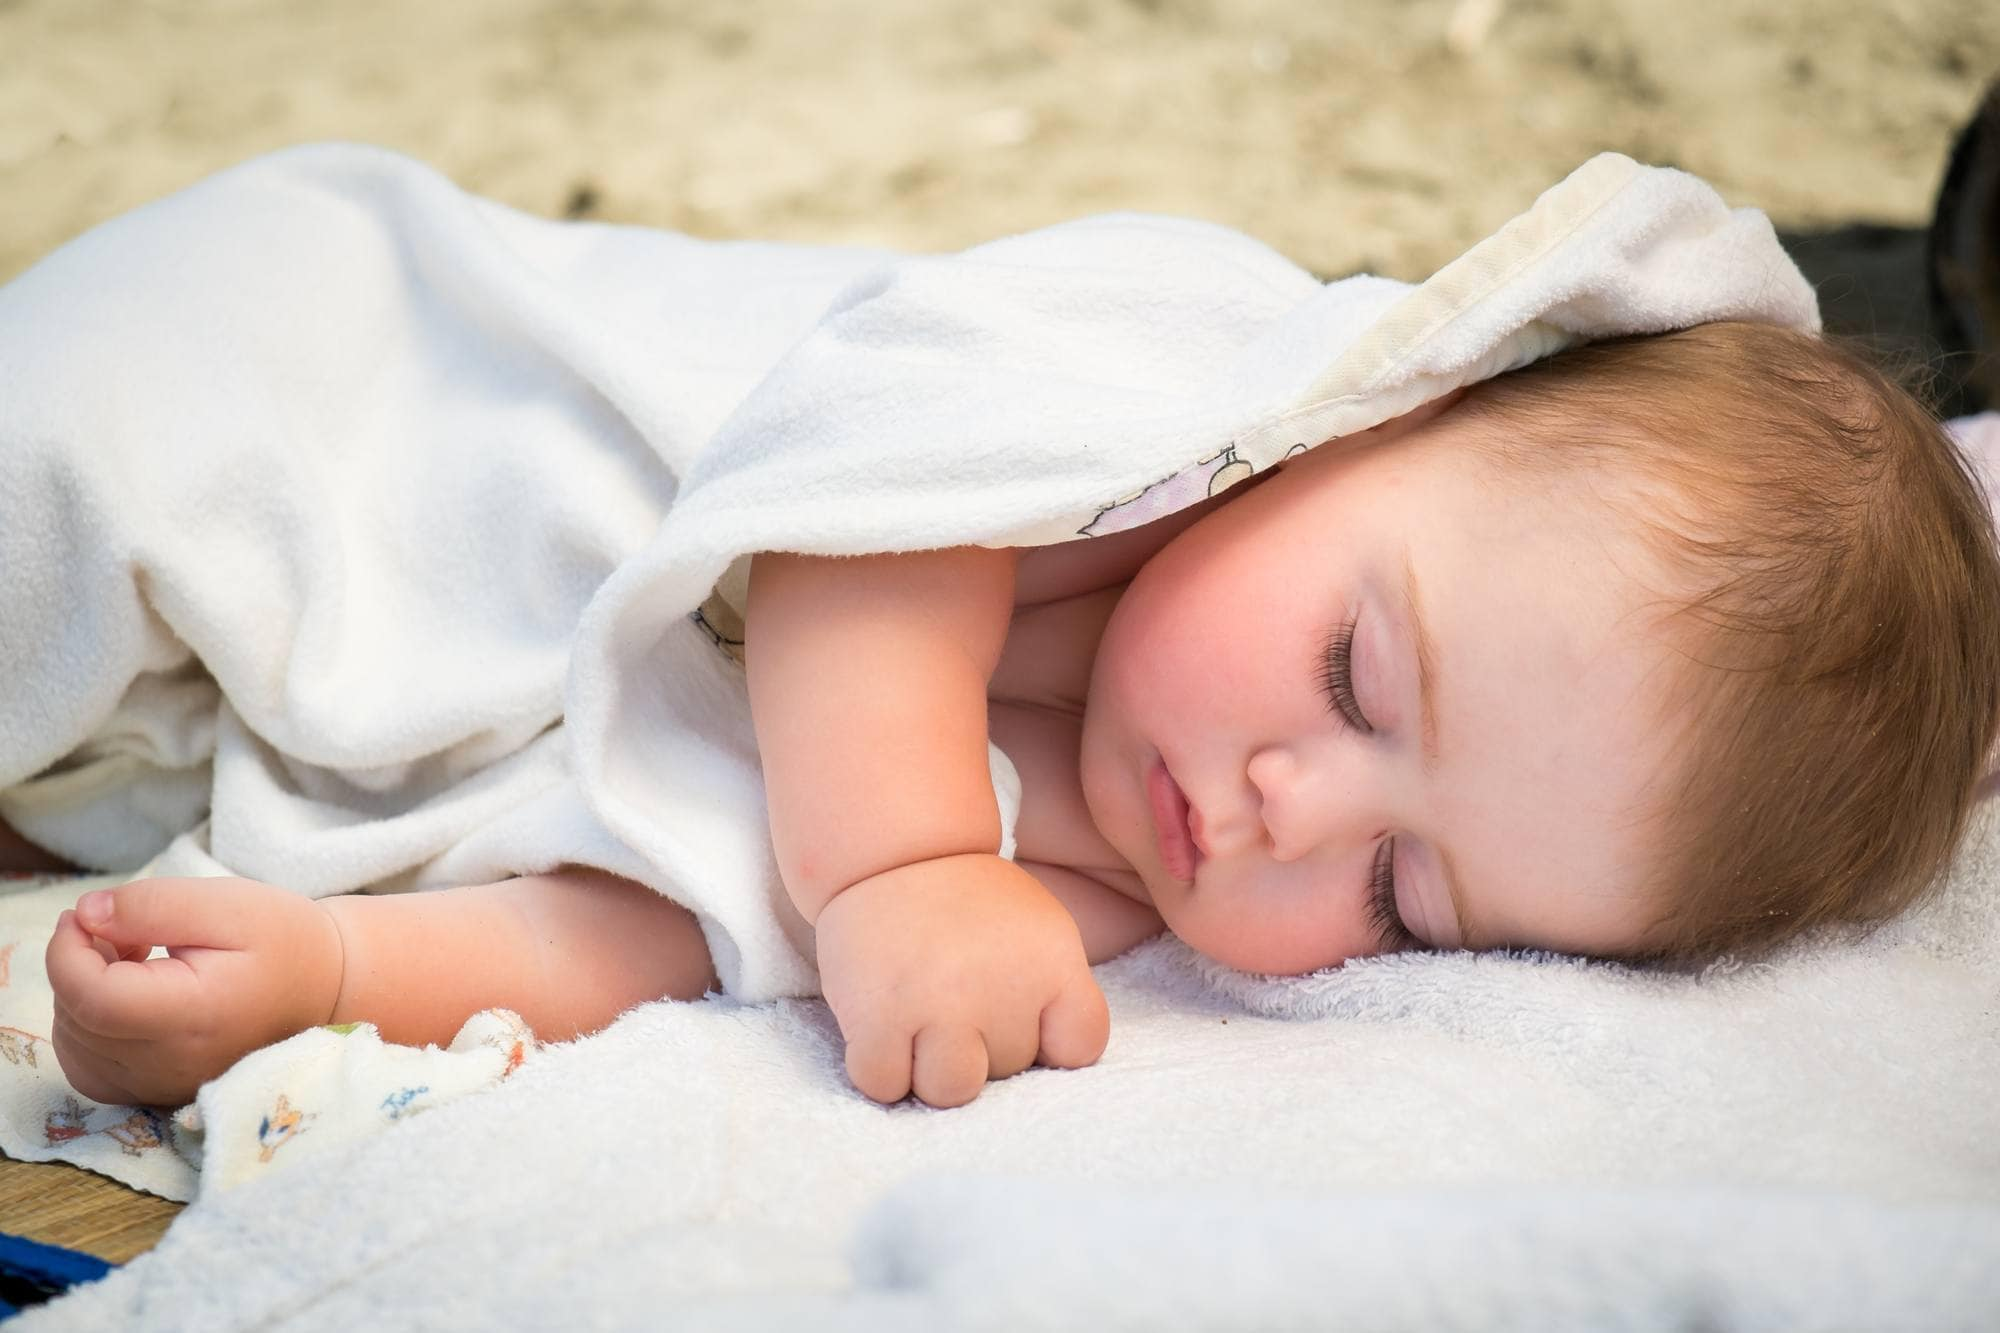 Grab naps where you can when traveling with babies and young children